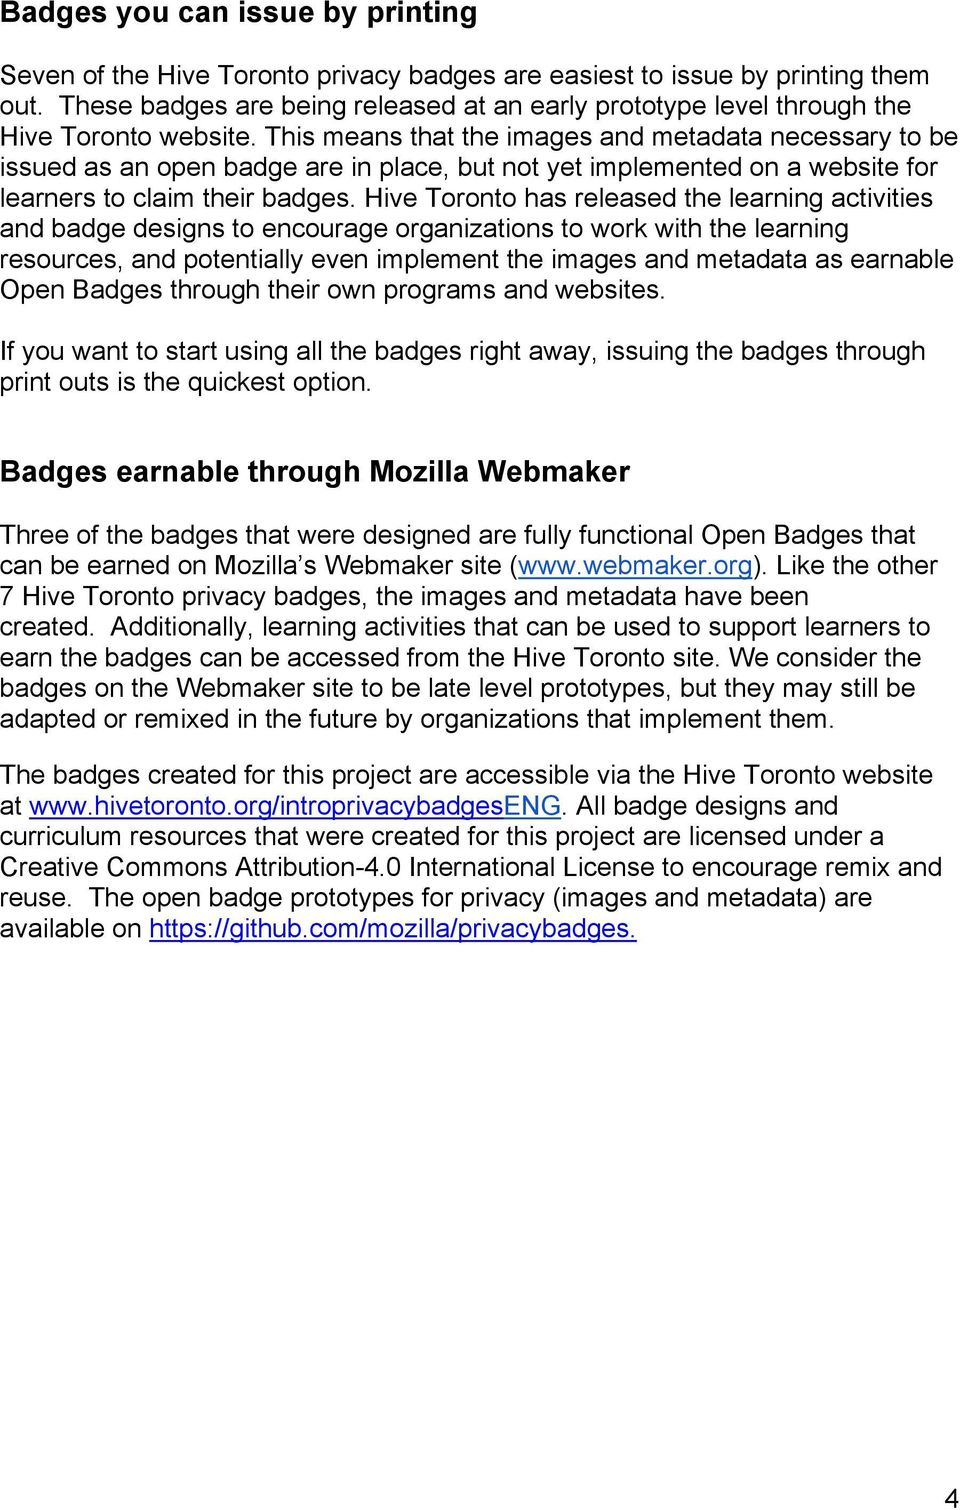 This means that the images and metadata necessary to be issued as an open badge are in place, but not yet implemented on a website for learners to claim their badges.